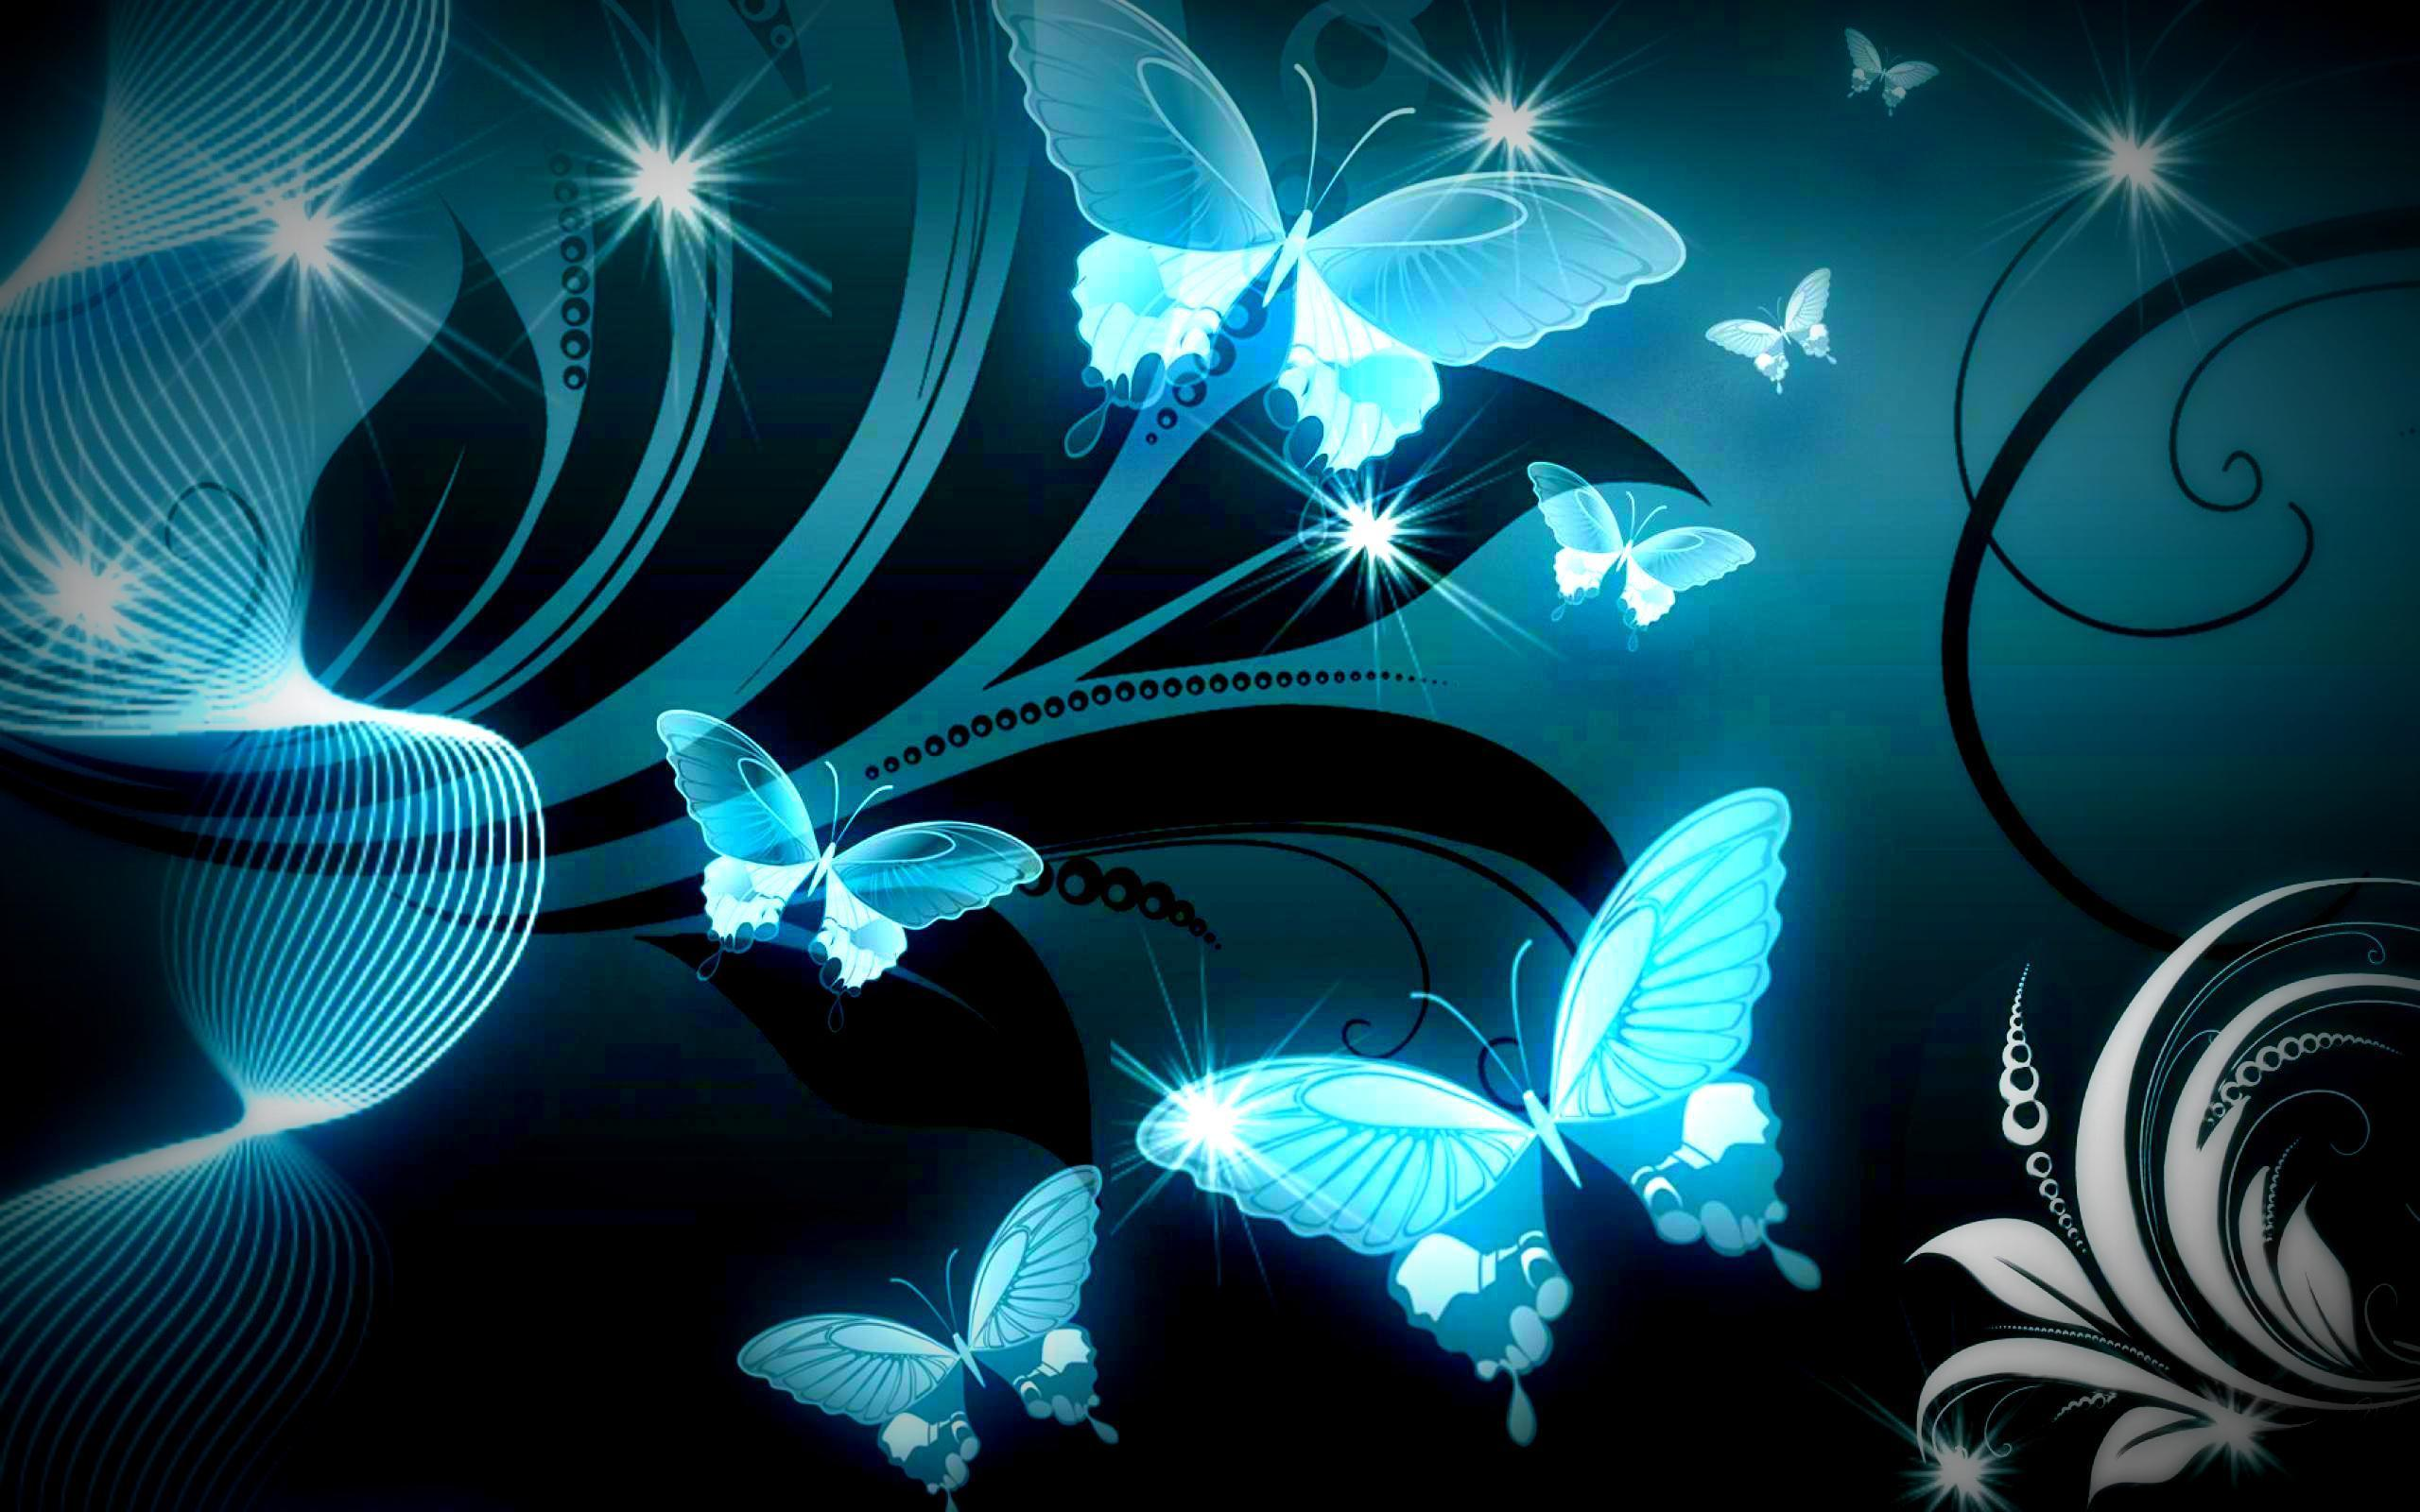 Blue Butterfly Wallpapers Wallpaper Cave HD Wallpapers Download Free Images Wallpaper [1000image.com]